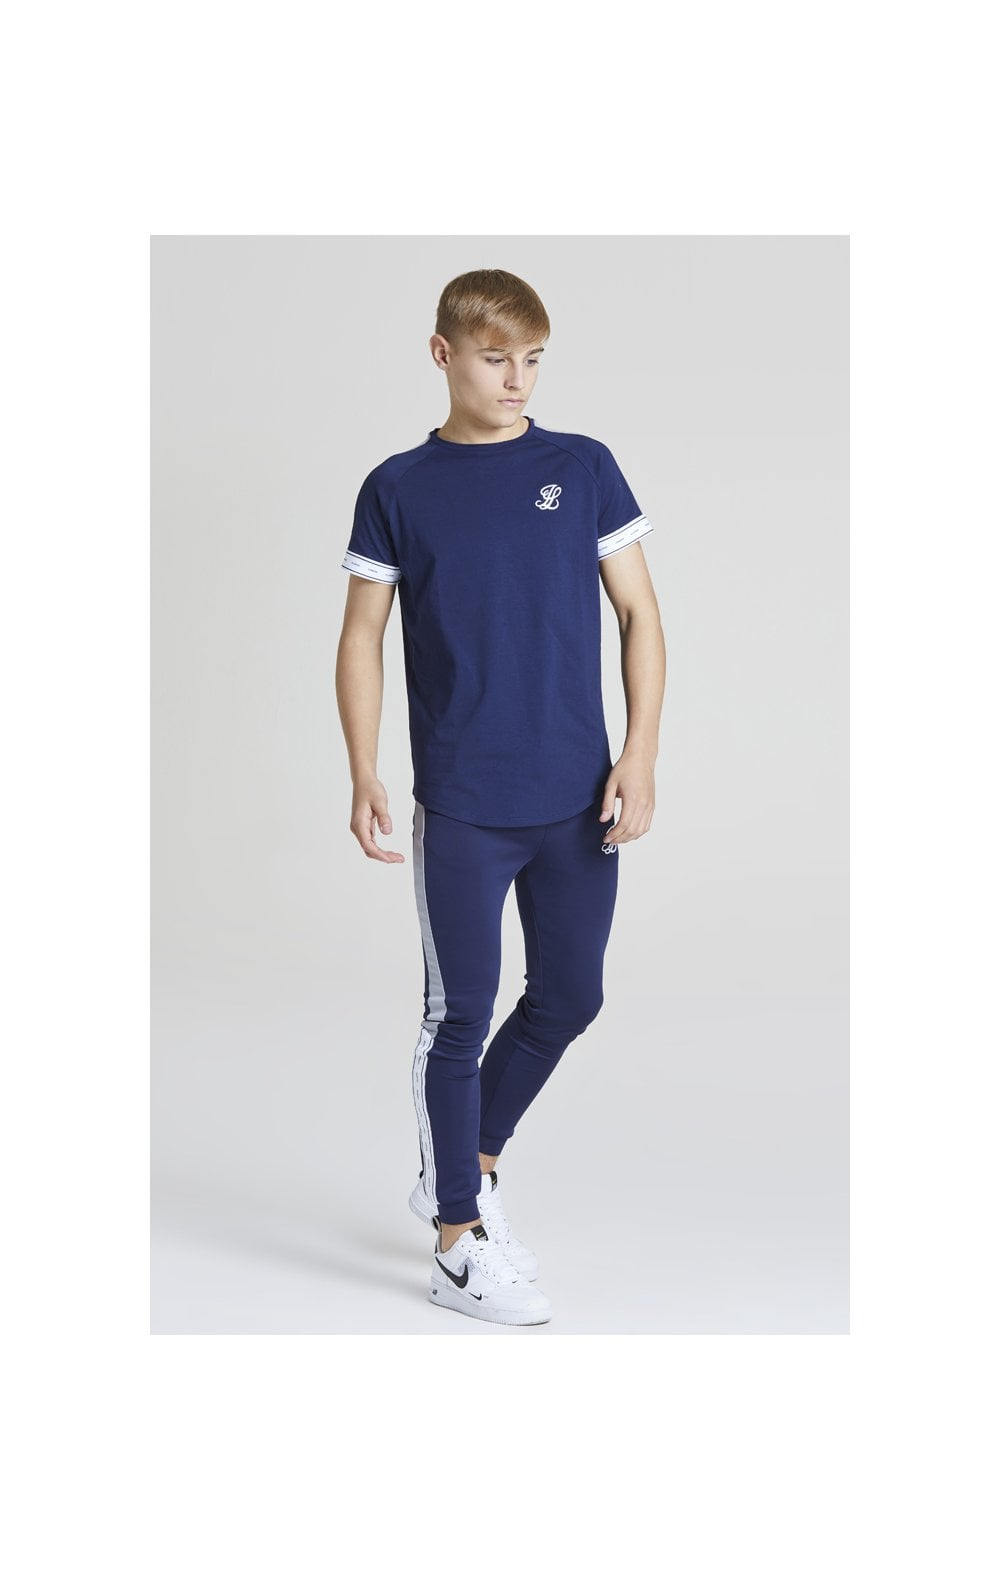 Load image into Gallery viewer, Illusive London Panel Tech Tee - Navy & Grey (3)